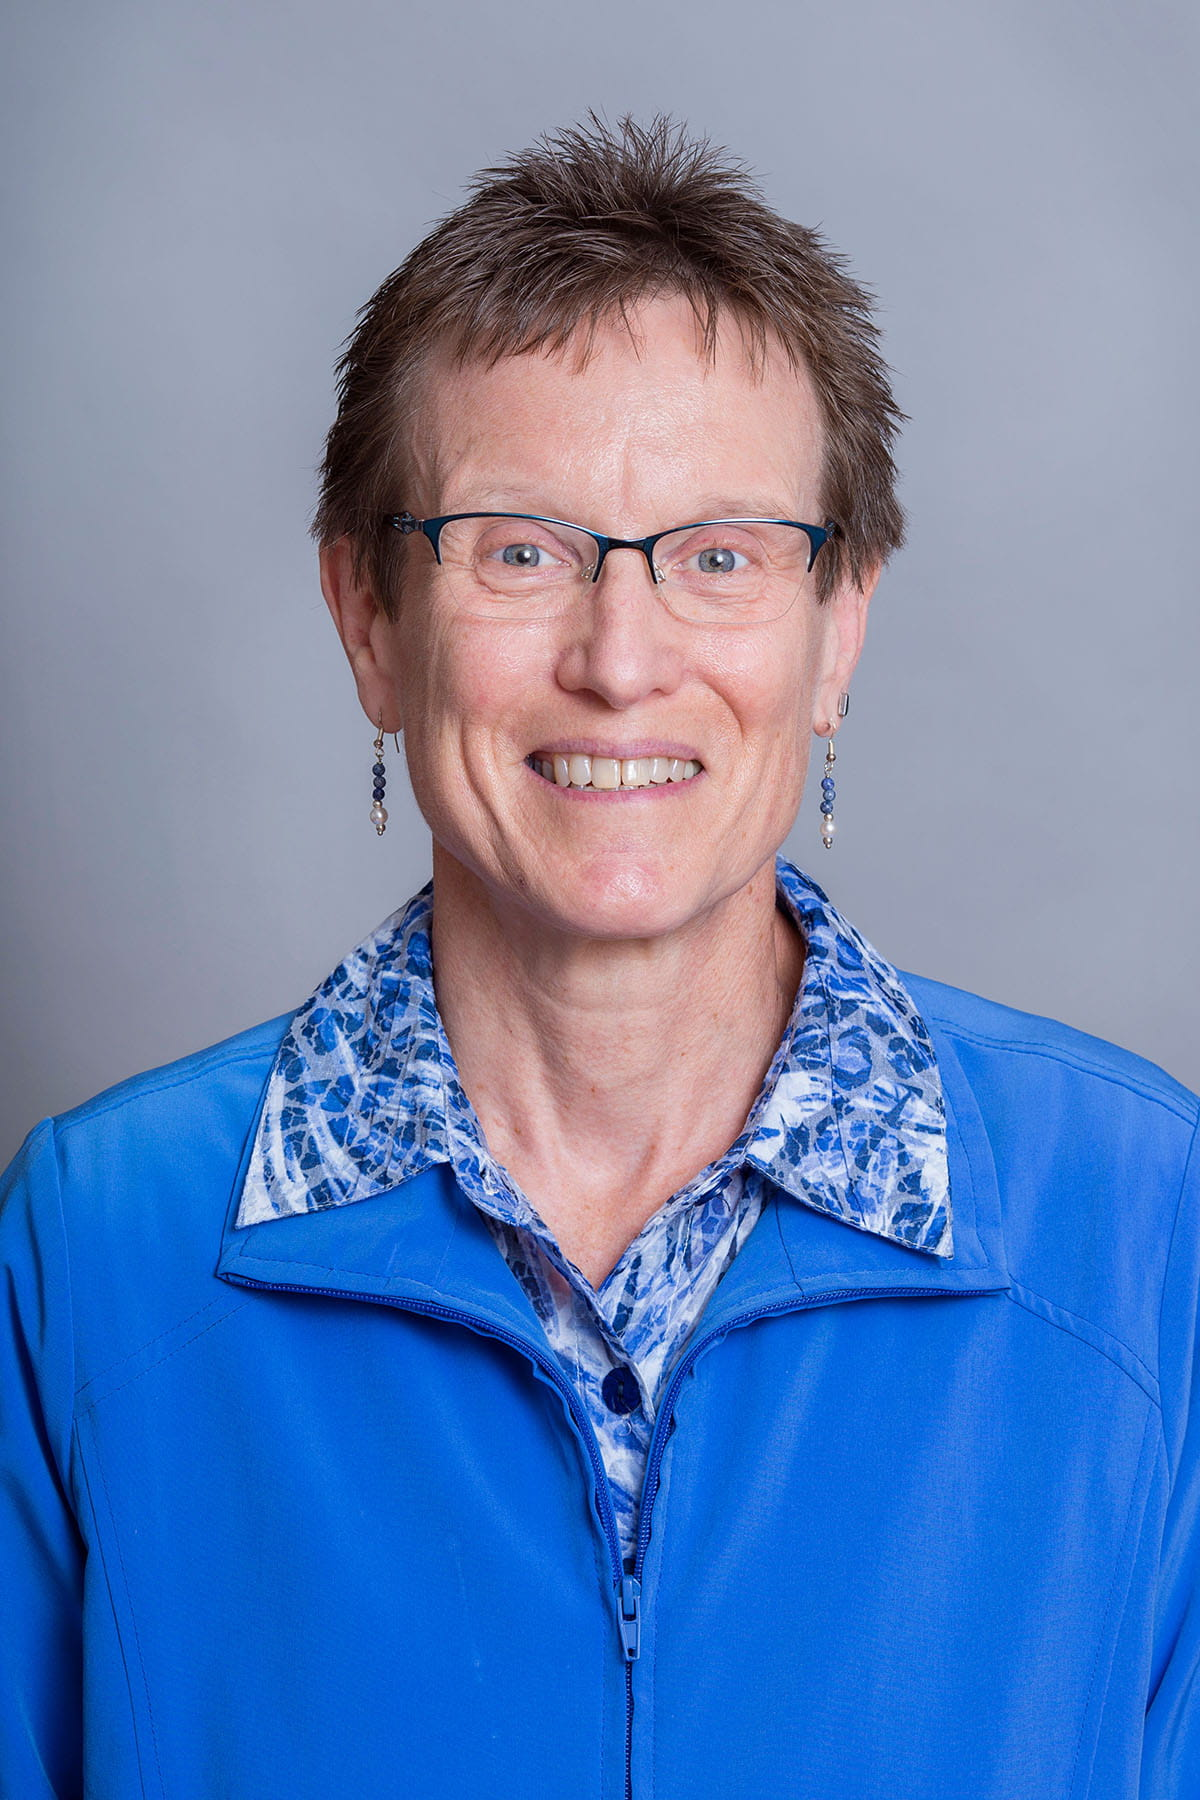 A photo of Susan L. Jelinek.